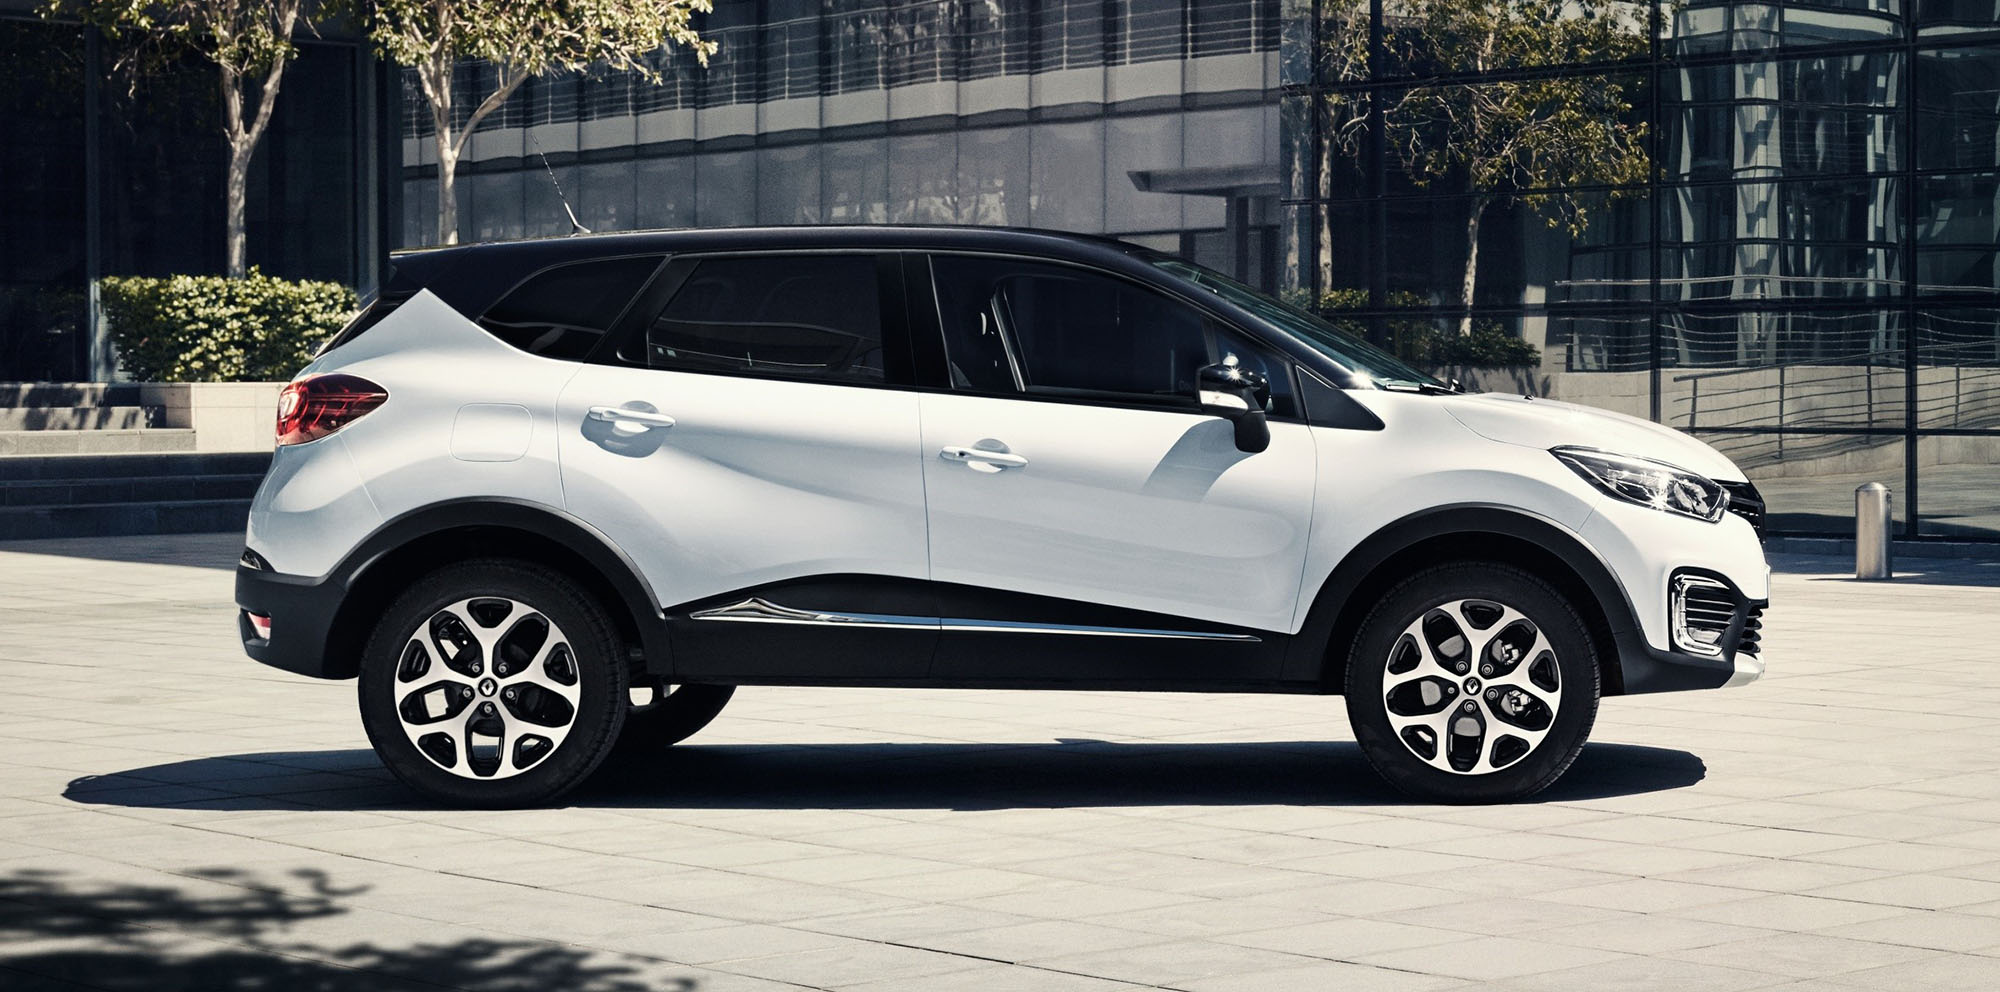 Renault Kaptur unveiled: A longer, wider Captur only for Russia - photos | CarAdvice